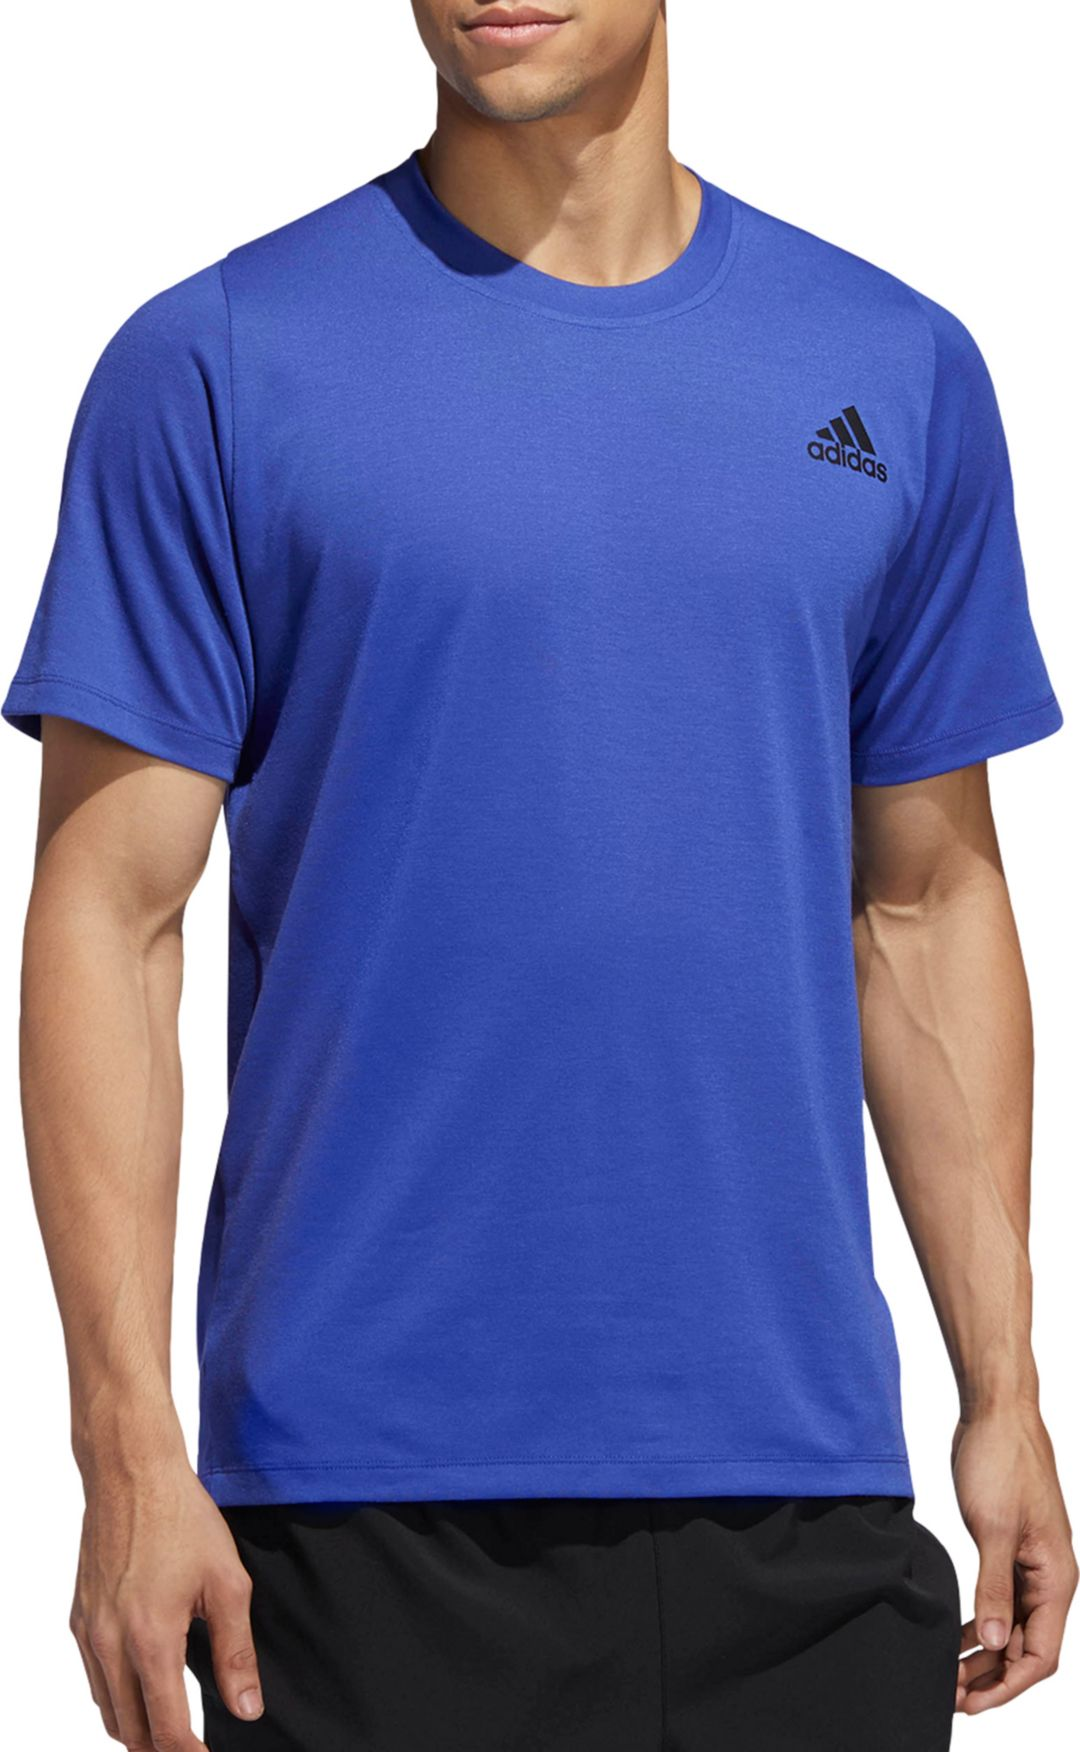 0ecfc5a0 adidas Men's FreeLift Sport Prime Lite T-Shirt | DICK'S Sporting Goods